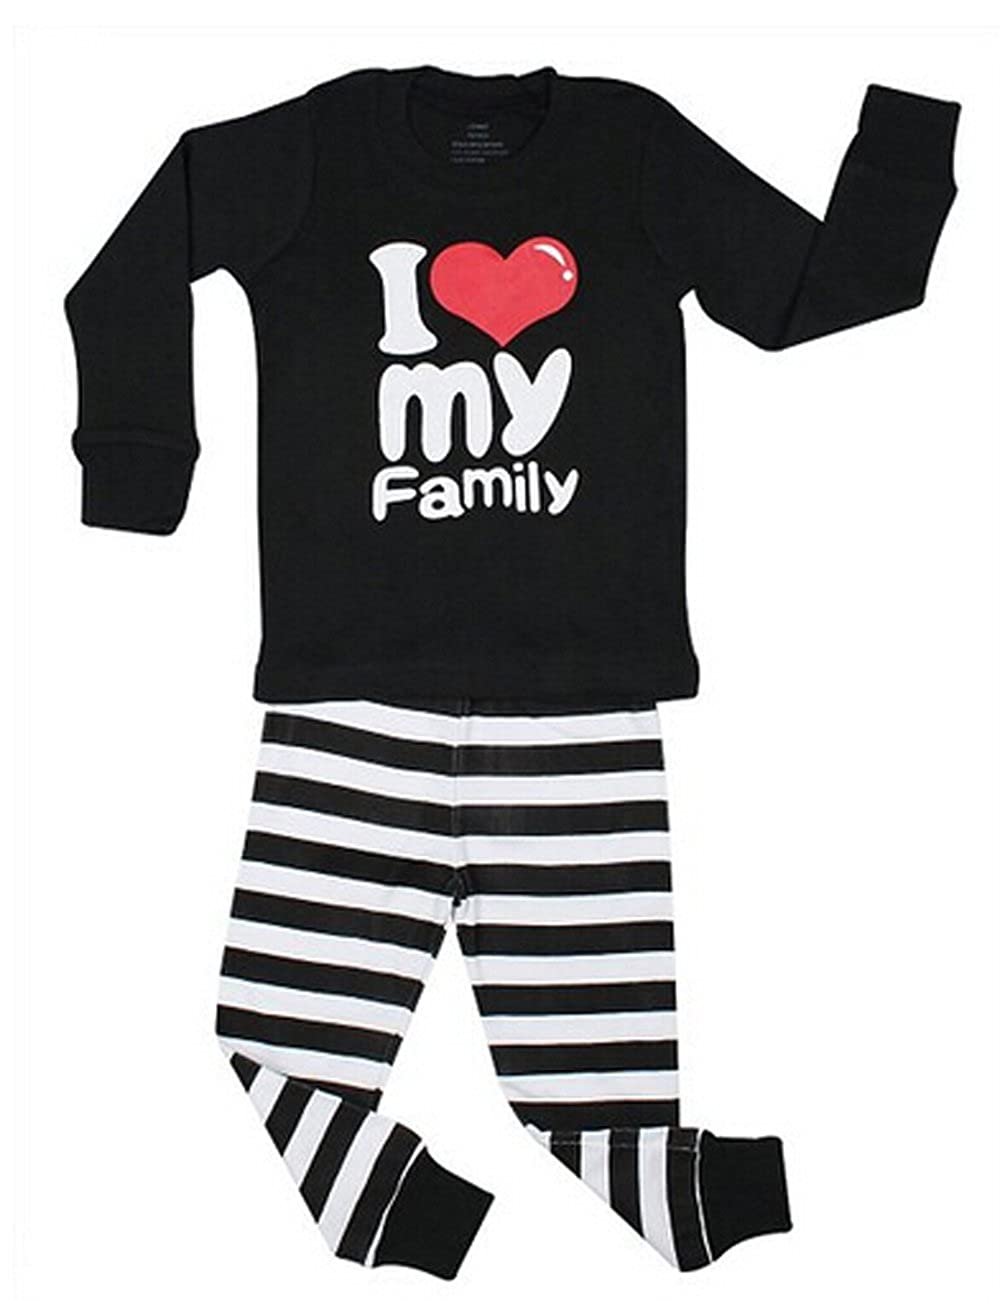 CANIS KidsI Love Family Long Sleeve Tops /& Striped Pants 2 Piece Pajama Set